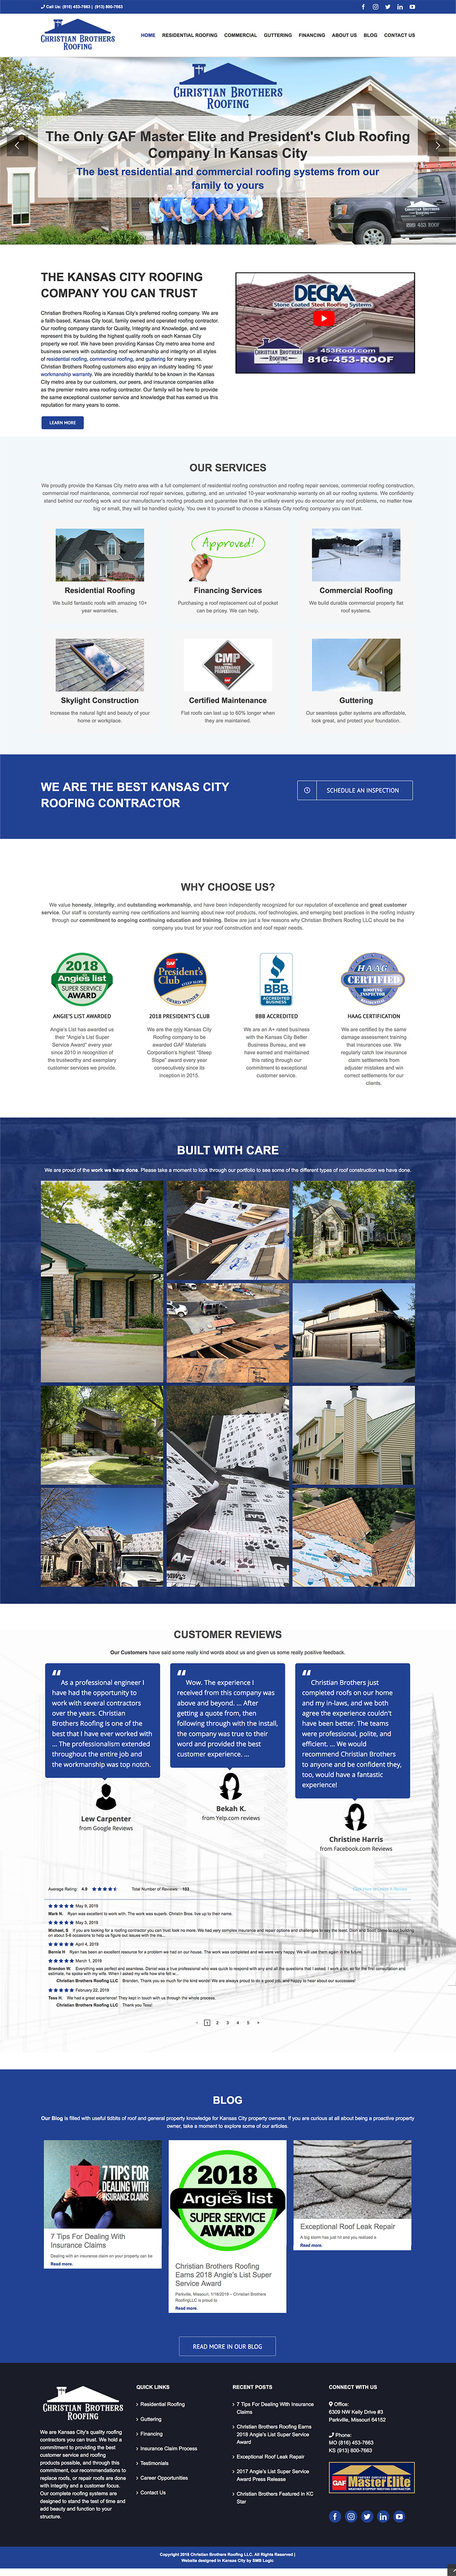 christian brothers roofing full homepage screen grab